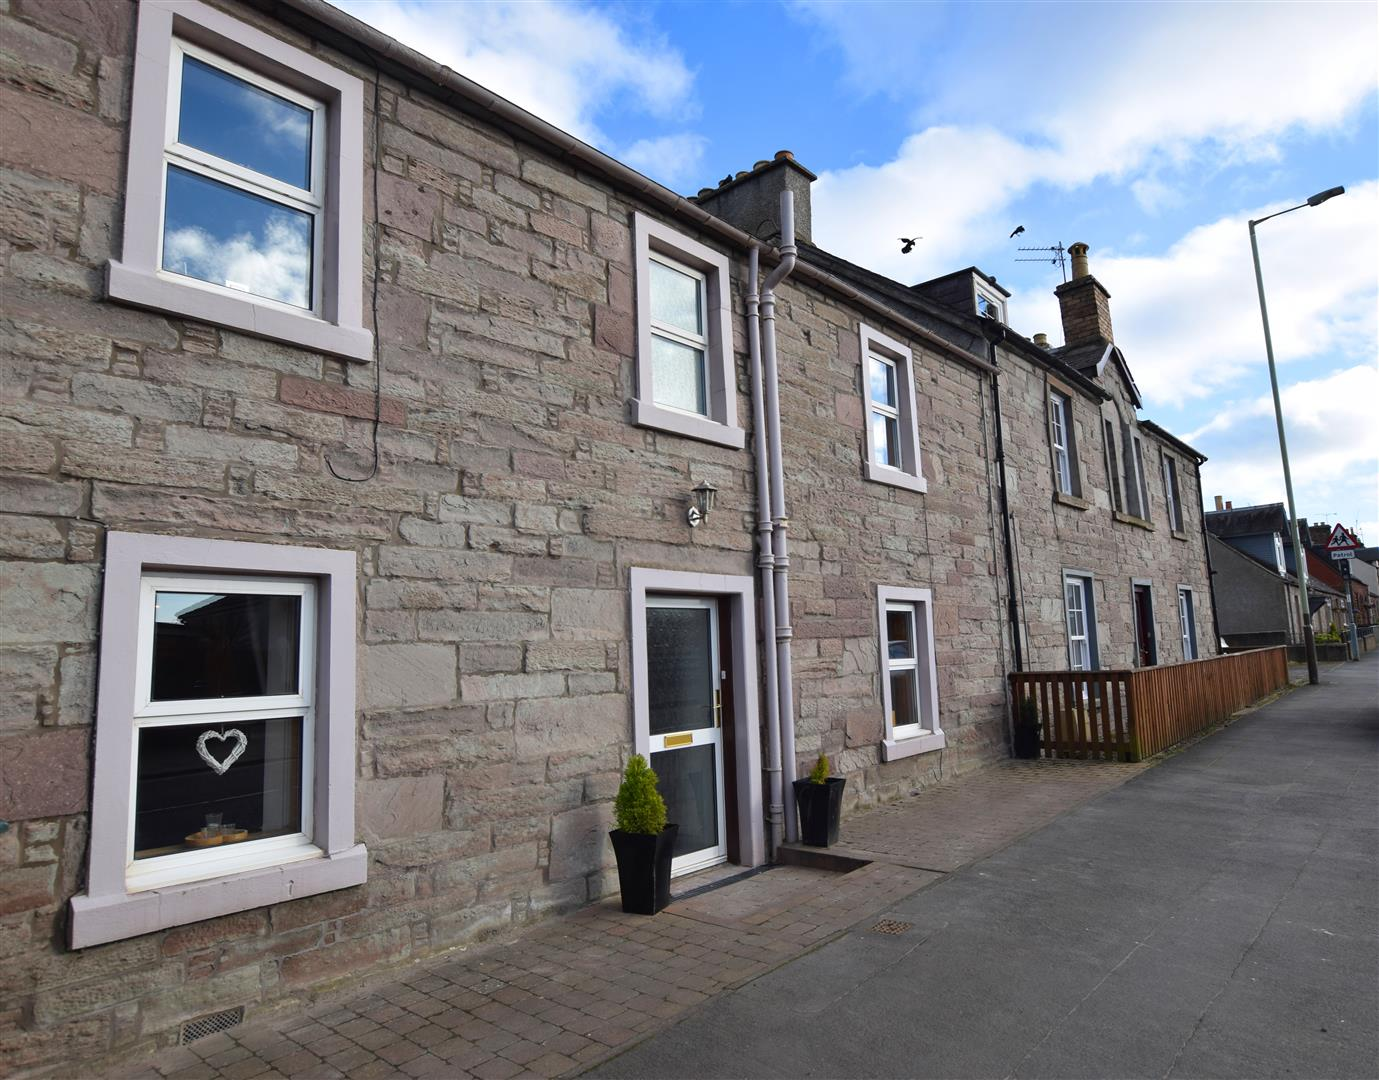 Wildon, High Street, Burrelton, Perthshire, PH13 9NX, UK